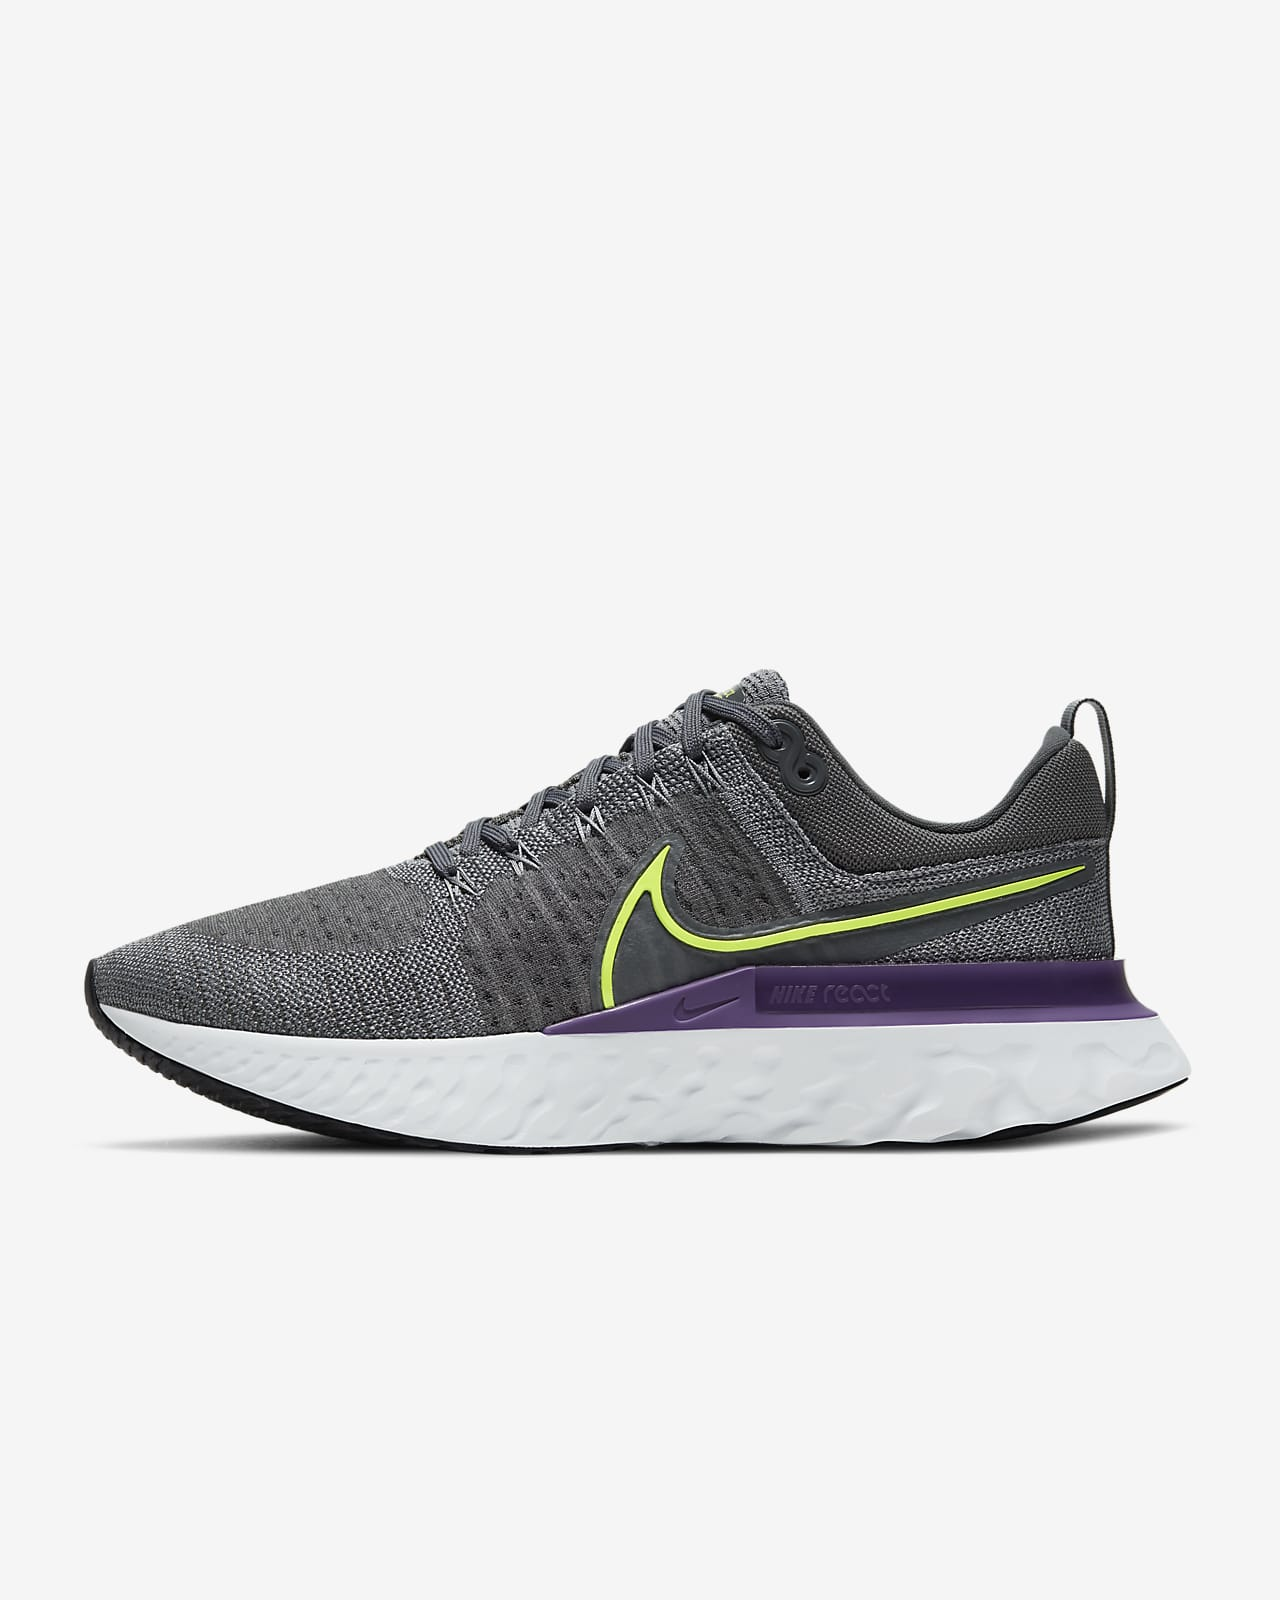 Nike React Infinity Run Flyknit 2 Men's Running Shoe